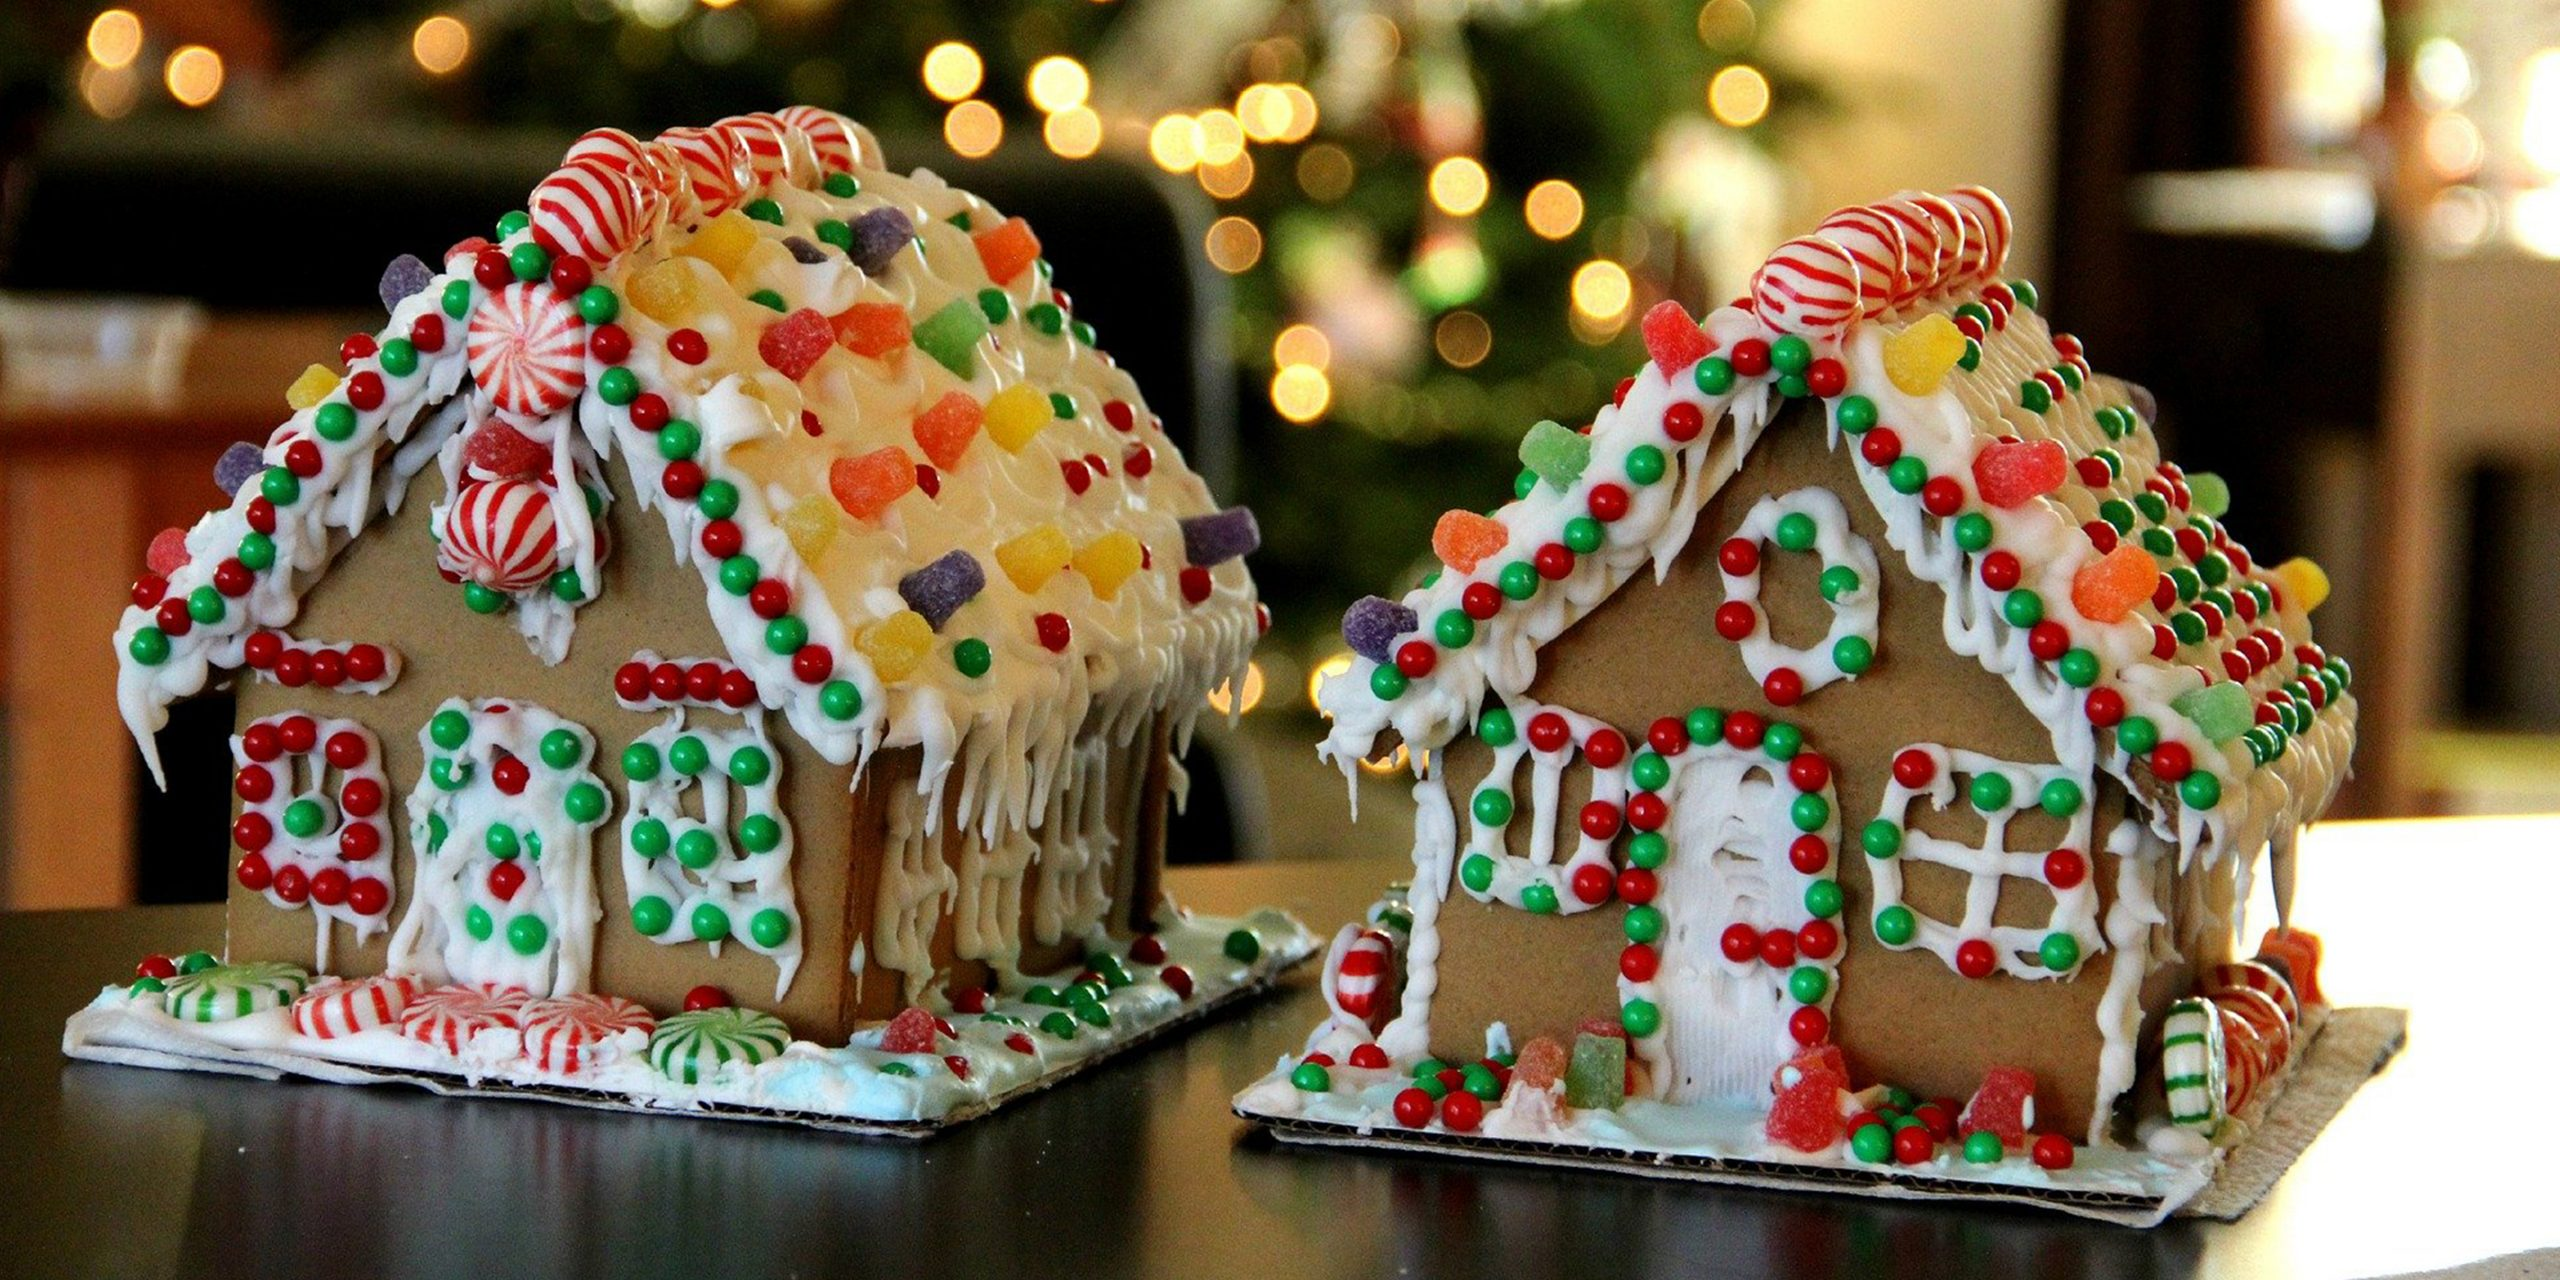 Family Fun Friday: Build a Gingerbread House